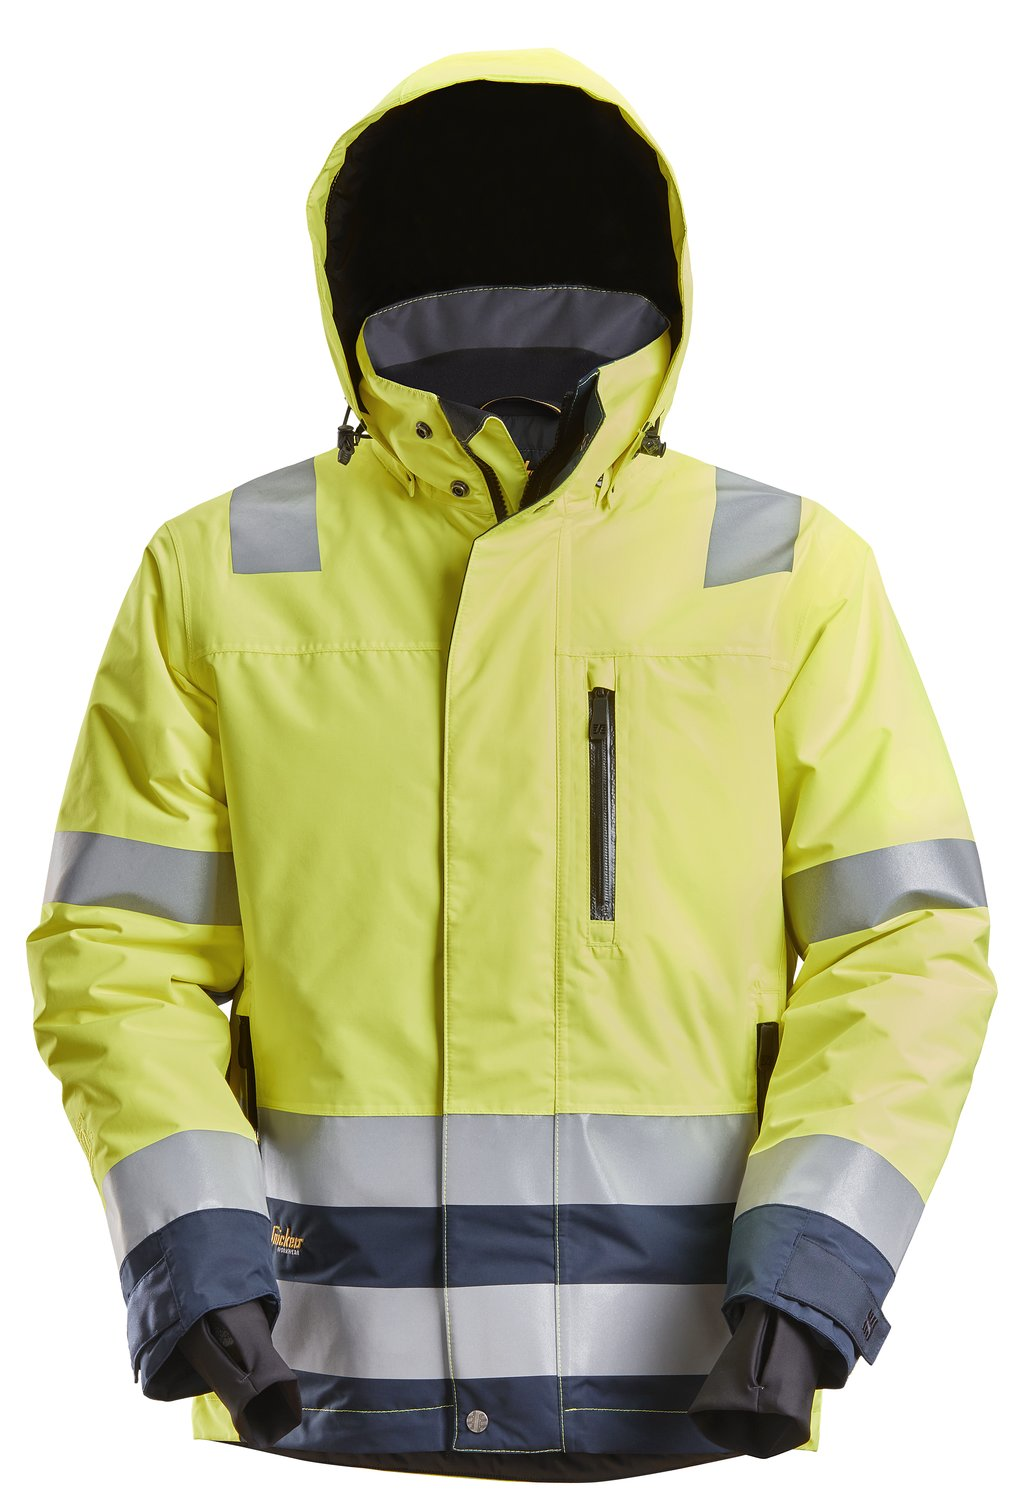 Snickers AllroundWork shell jacket, Hi-Vis Yellow/Marine Blue